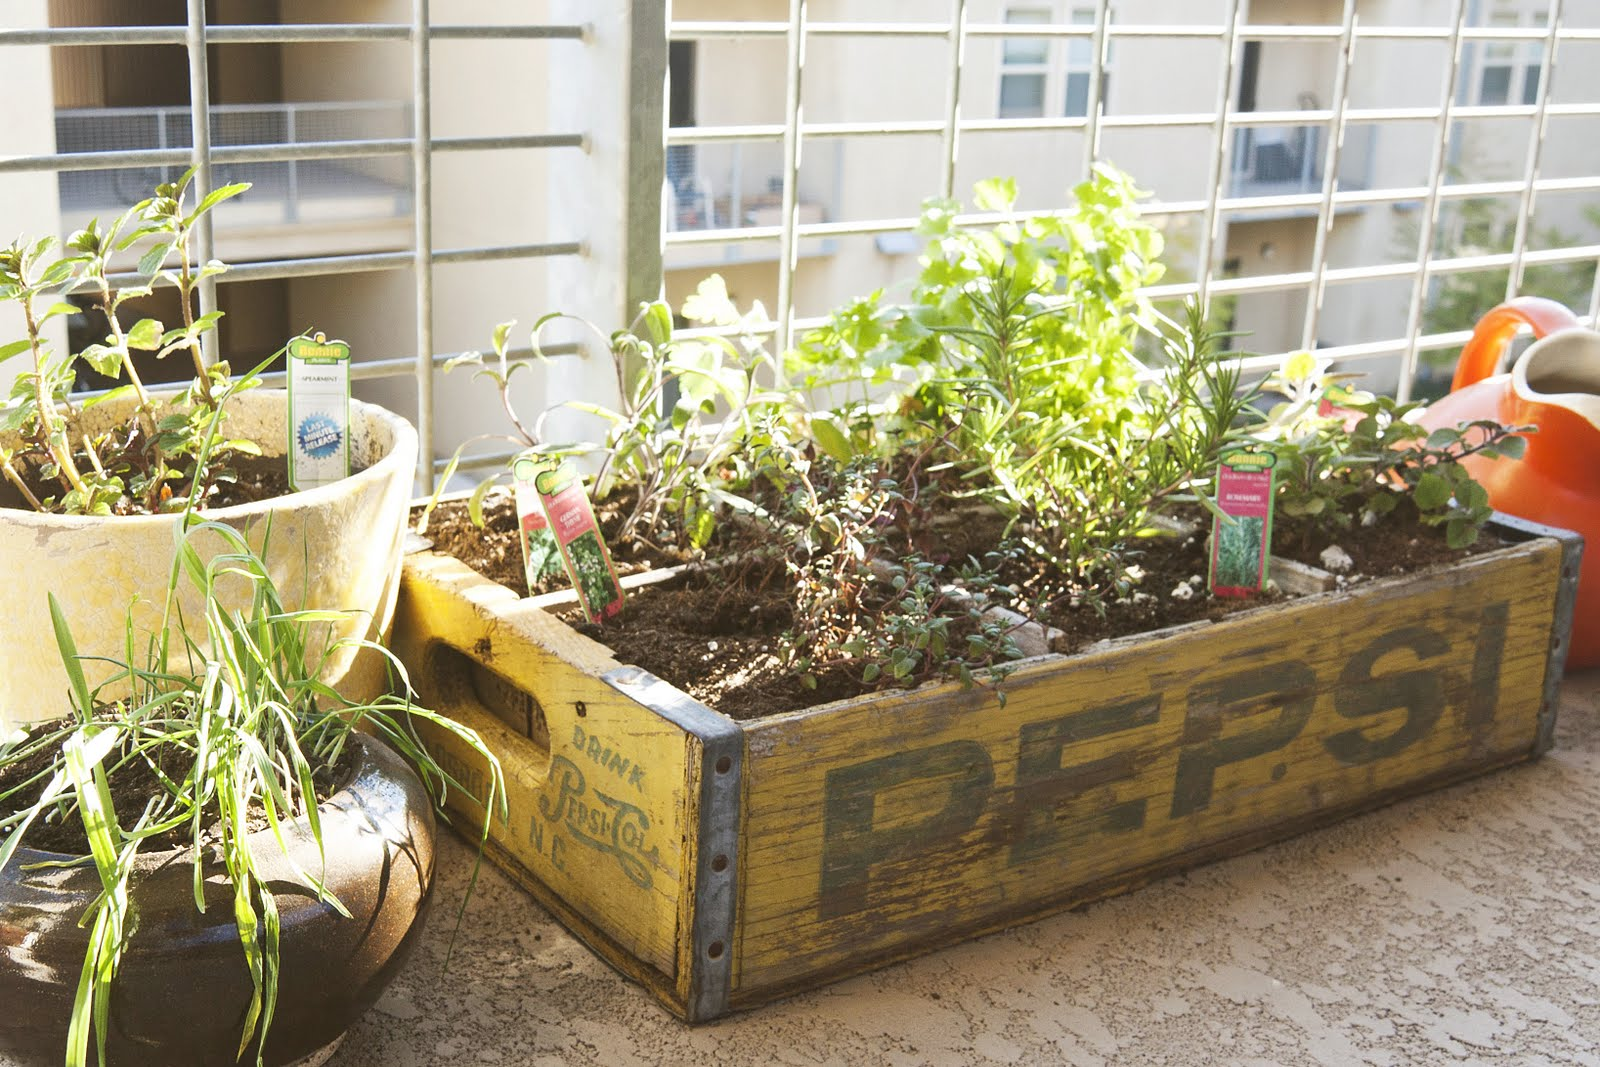 The Crate Herb Garden Tim And I Made Is Working Out Beautifully And Has  Become The Pretty Little Center To A Collection Of Small Plants.